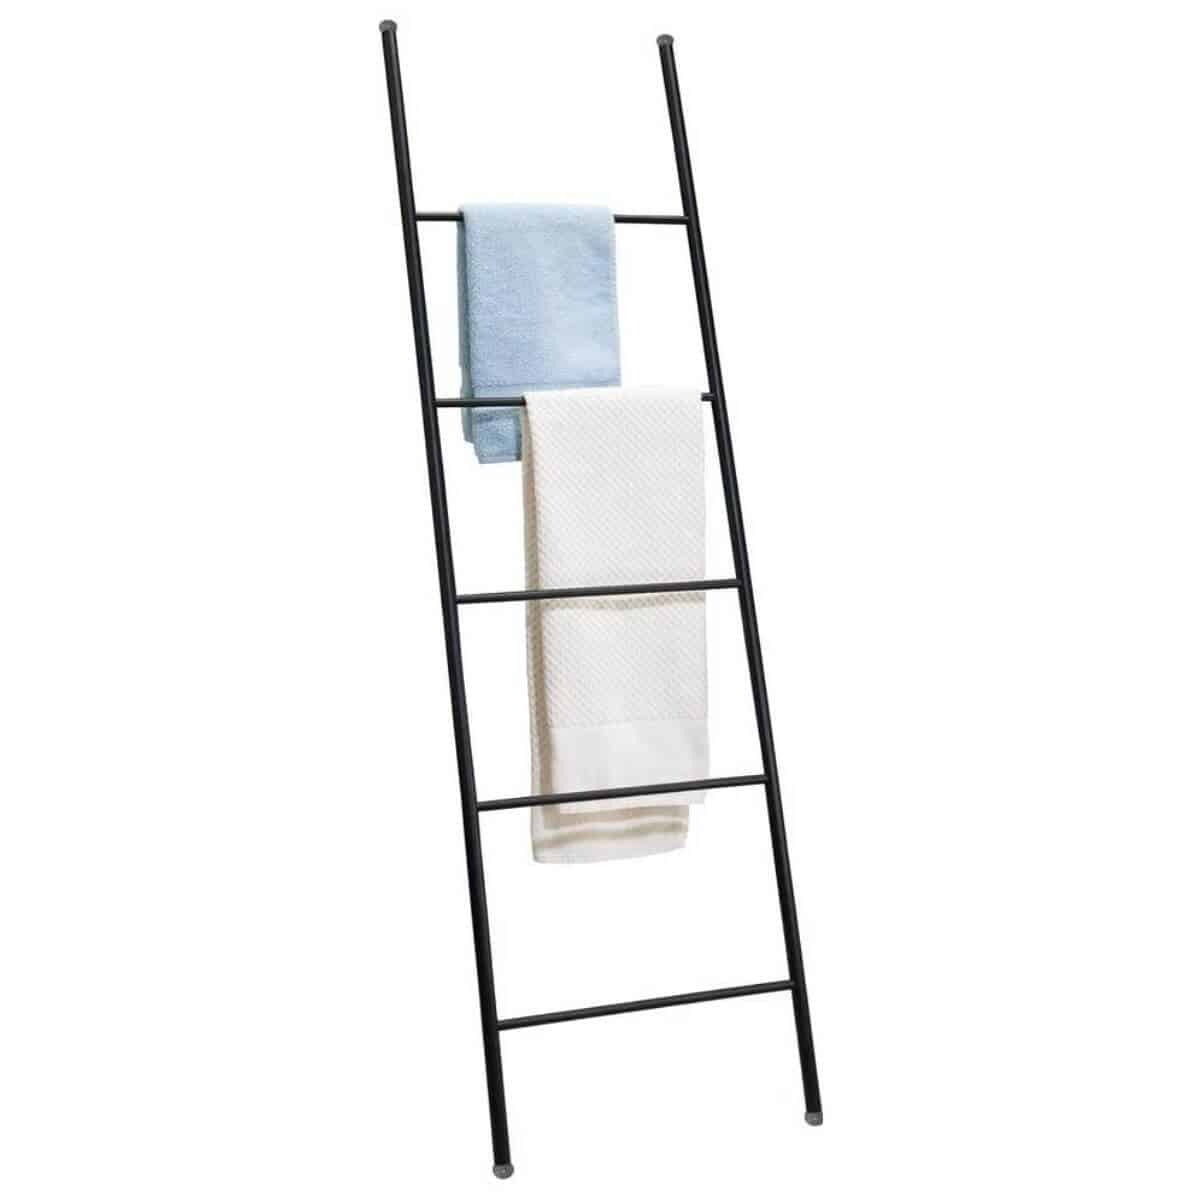 Black towel ladder with two towels on it.